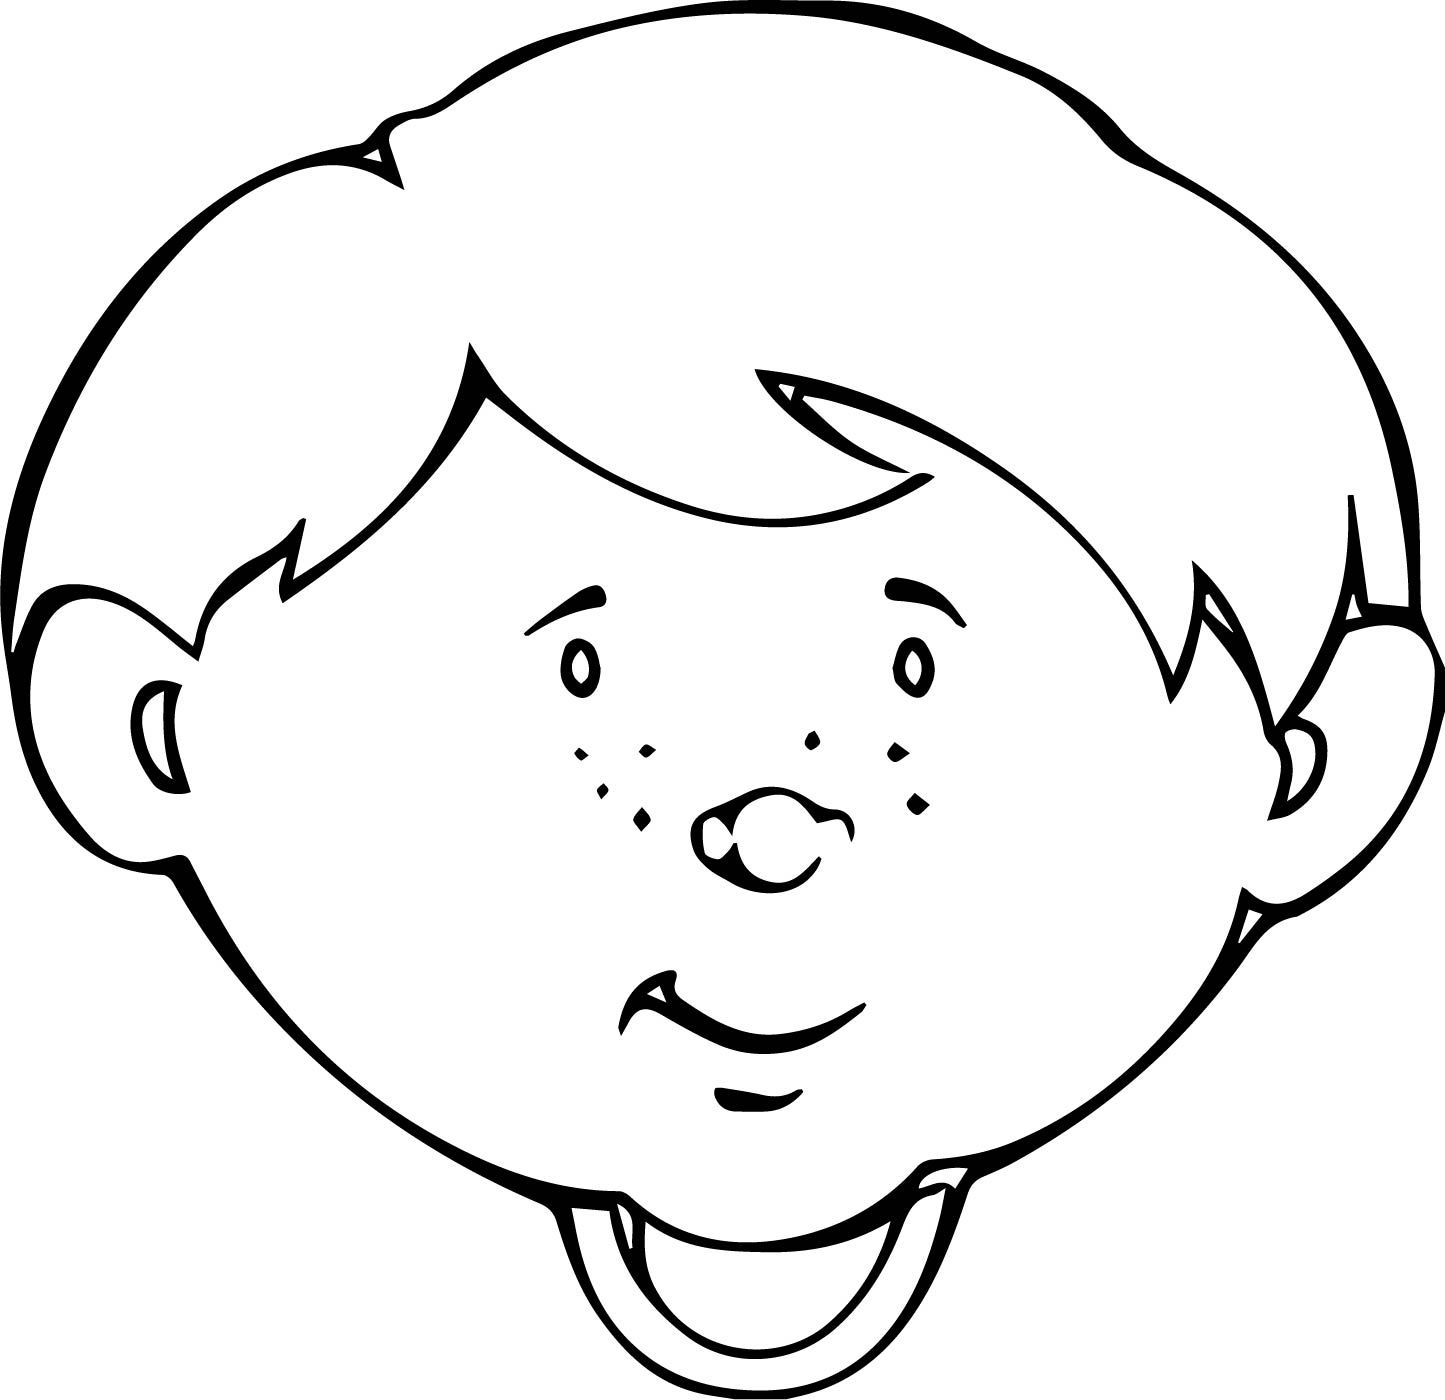 nice Cute Child Face Coloring Page | Coloring pages, Child face, Coloring  pages for kids